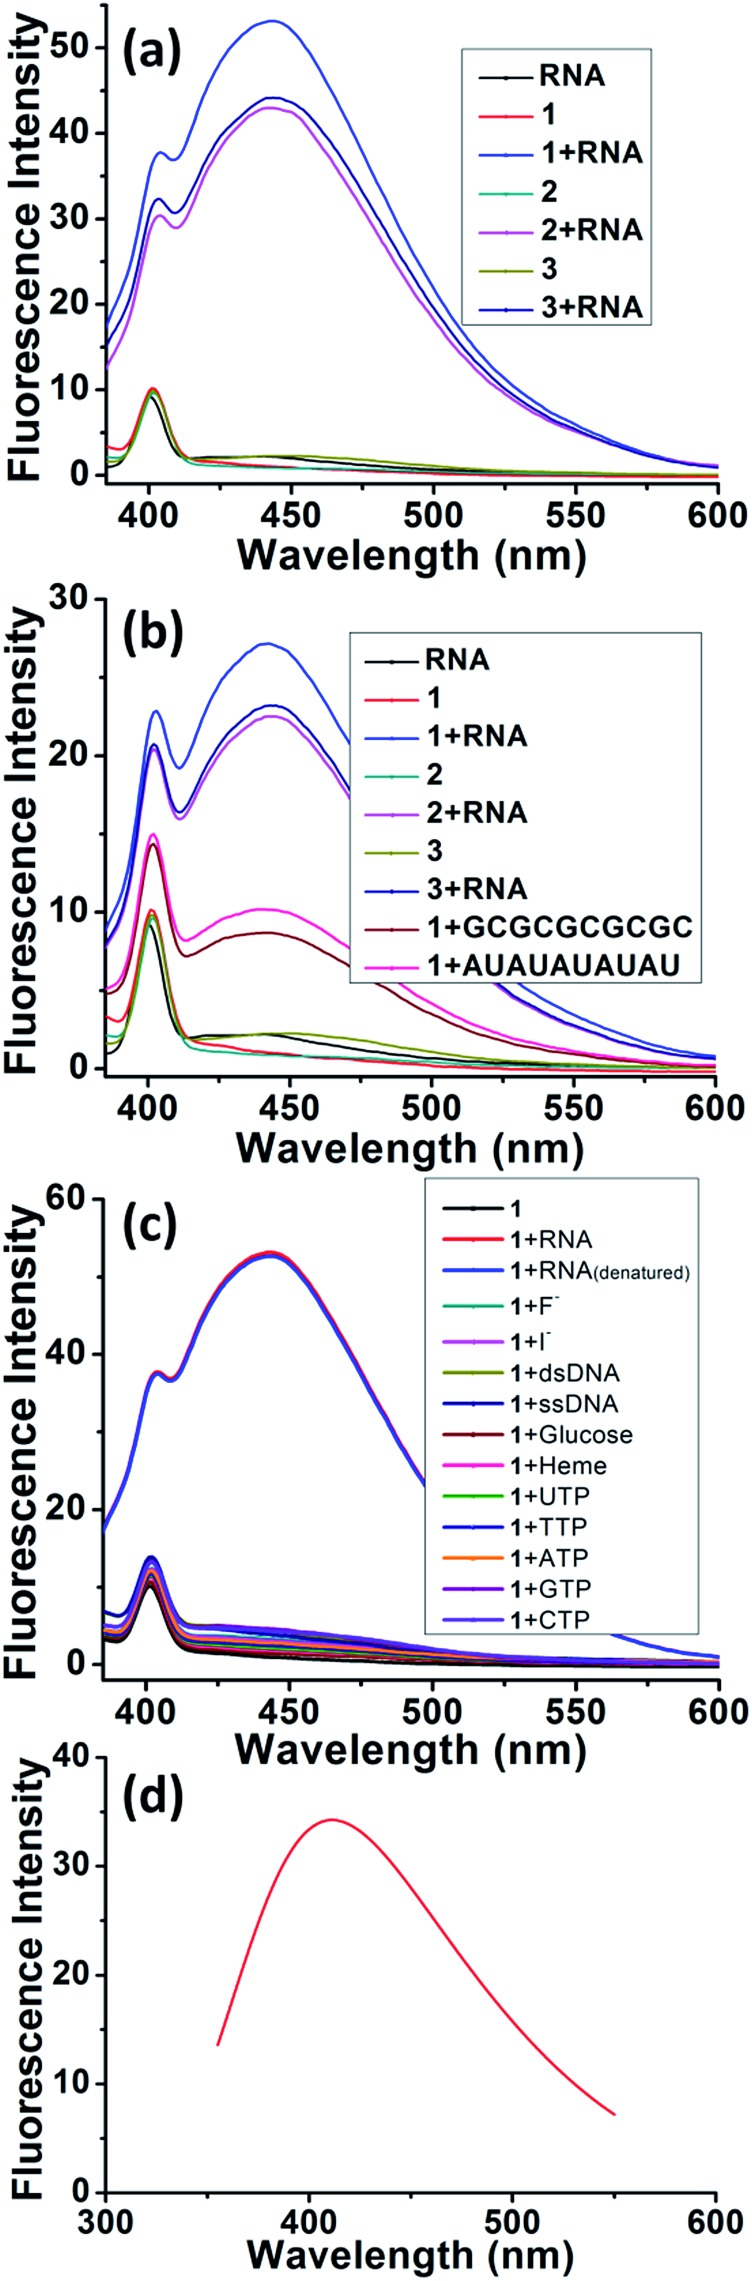 Experimental and theoretically calculated fluorescence spectra. (a) Fluorescence of tRNA from baker's yeast (10 μM), probes 1–3 (10 μM) and probes 1–3 with tRNA from baker's yeast. (HEPES buffer pH = 7.4, slit width = 5 nm) (b) fluorescence of <t>RNA</t> from torula yeast (10 μM), probes 1–3 (10 μM), probes 1–3 with RNA from torula yeast and fluorescence of probe 1 with tRNA (GCGCGCGCGC and AUAUAUAUAU). (HEPES buffer pH = 7.4, slit width = 5 nm) (c) fluorescence of probe 1 (10 μM) in the presence of RNA, denatured RNA, F – , Cl – , heme, glucose, ssDNA, dsDNA, <t>UTP,</t> TTP, ATP, GTP and CTP (10 equiv.) (HEPES buffer pH = 7.4, slit width = 5 nm). (d) Fluorescence results from TD-DFT calculations.